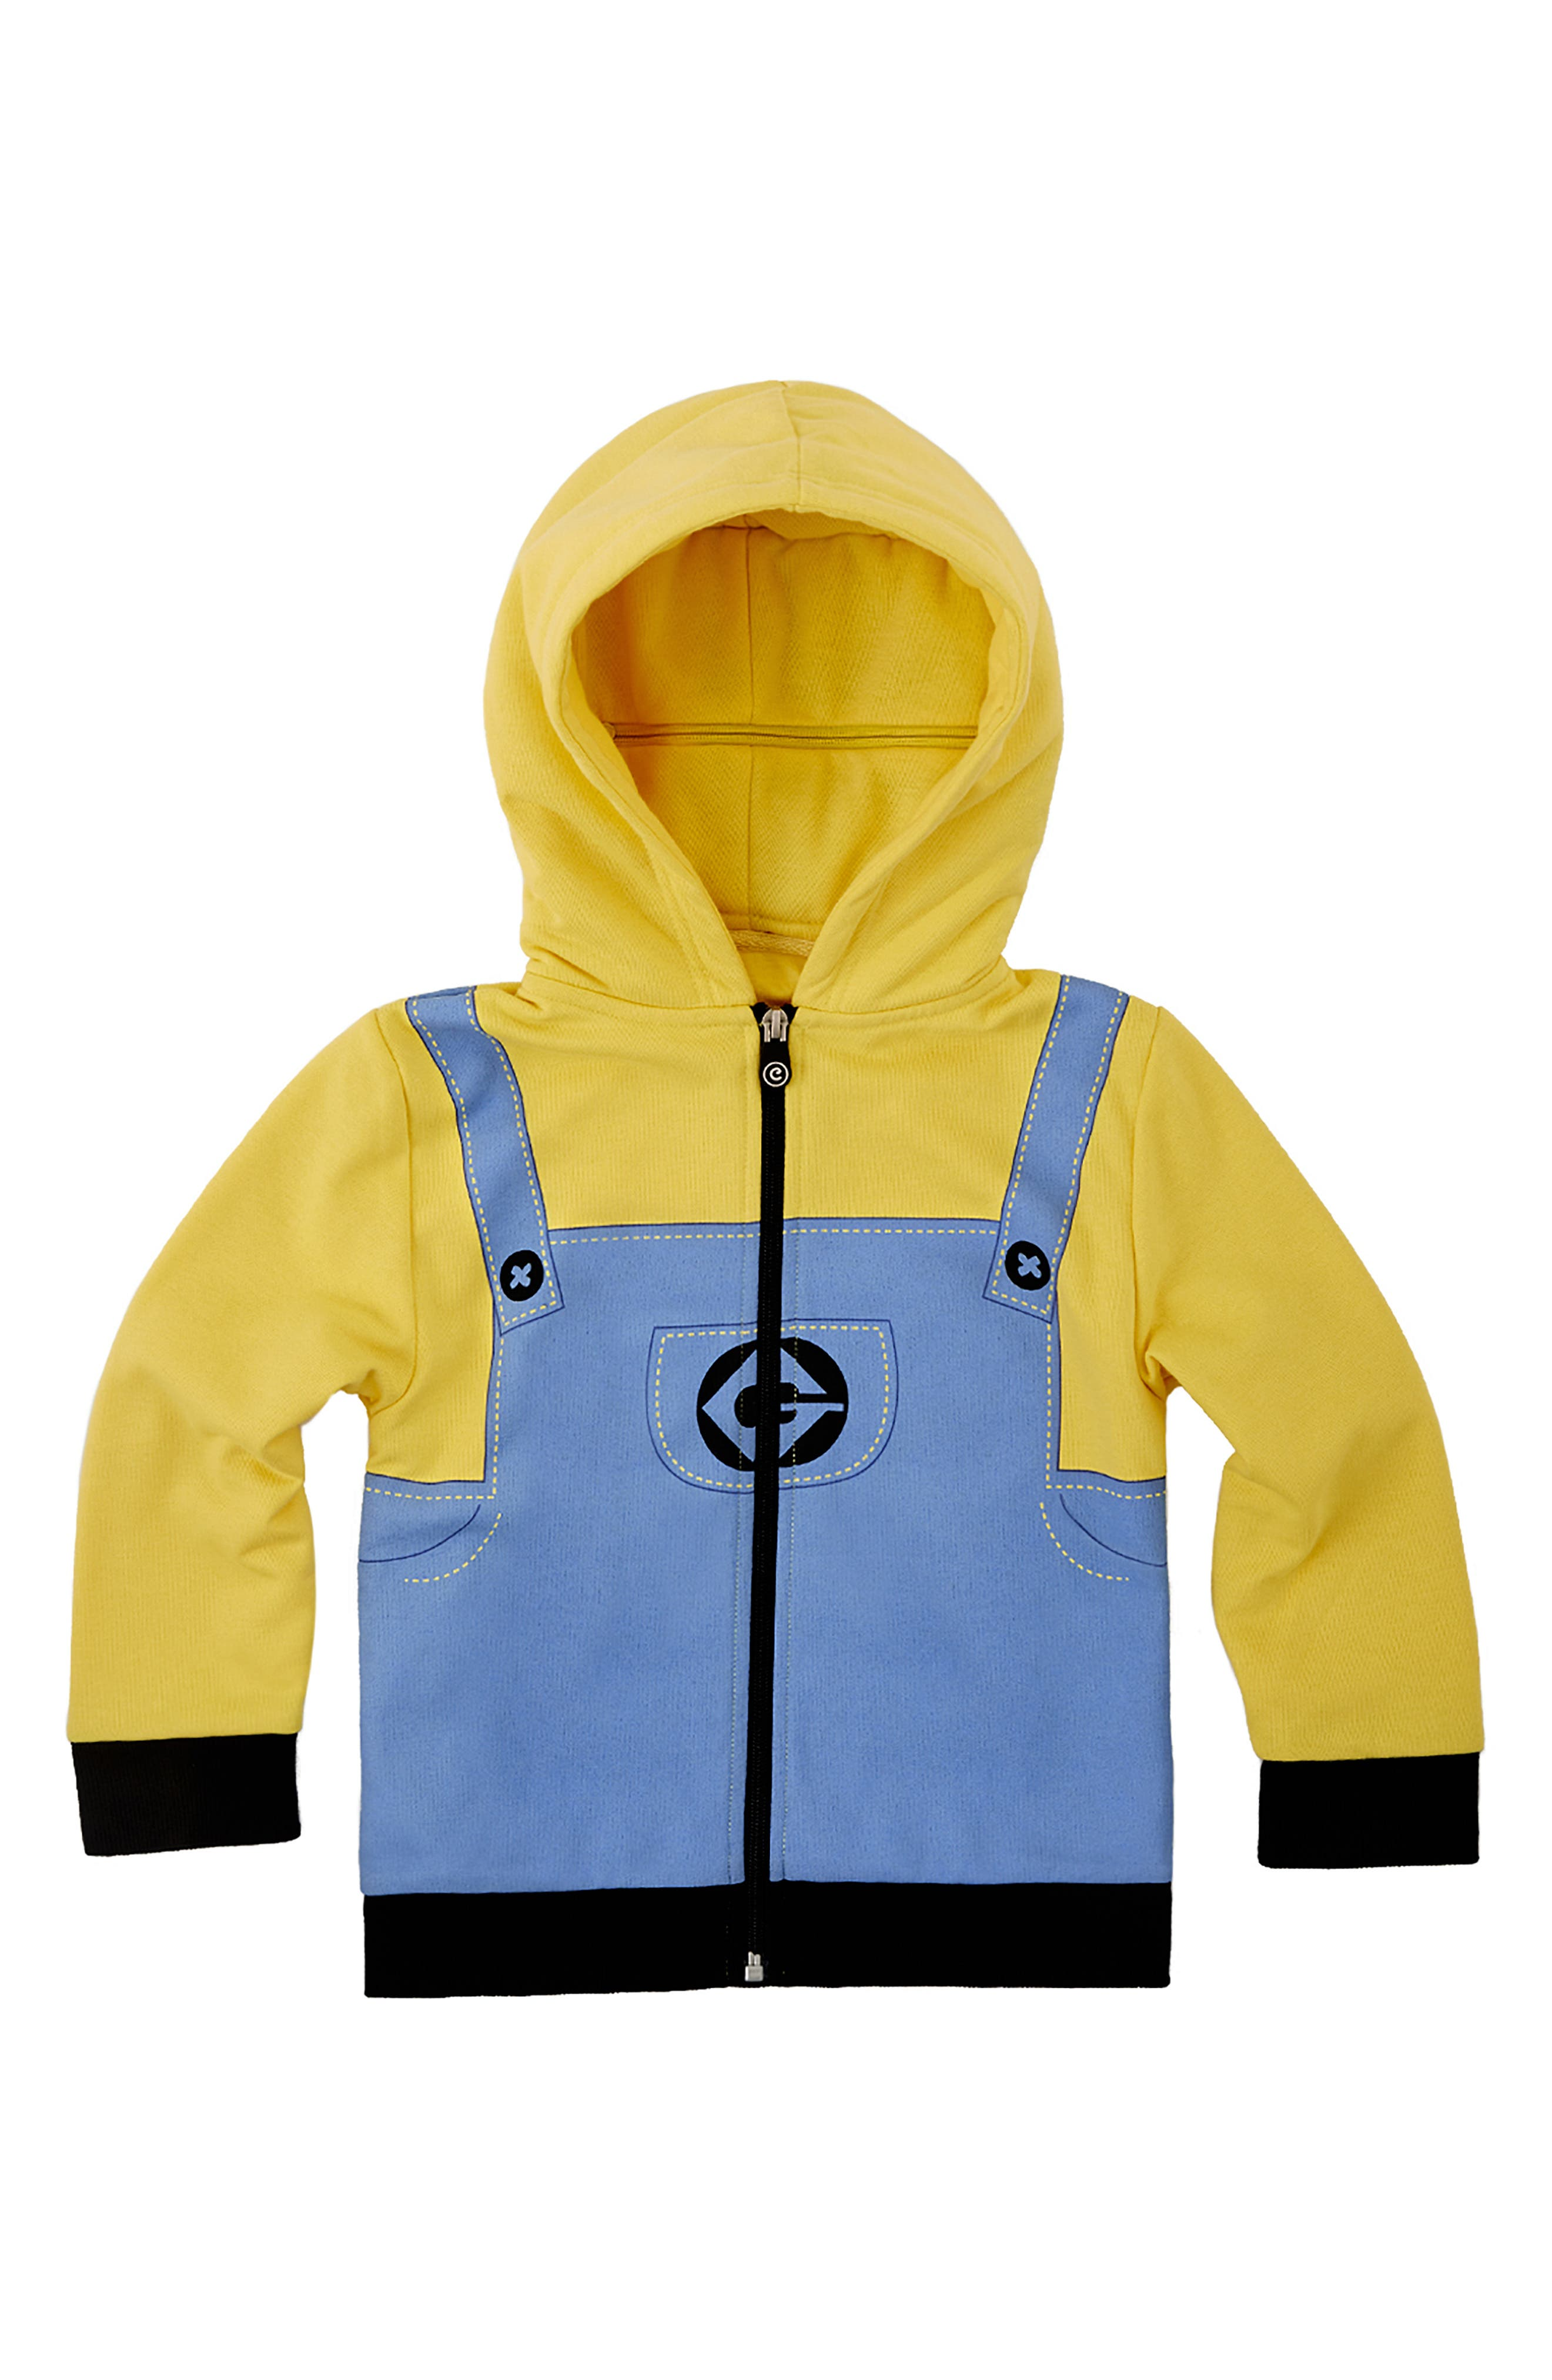 CUBCOATS, Minion Bob<sup>®</sup> 2-in-1 Stuffed Animal Hoodie, Alternate thumbnail 5, color, YELLOW / BLUE MIX